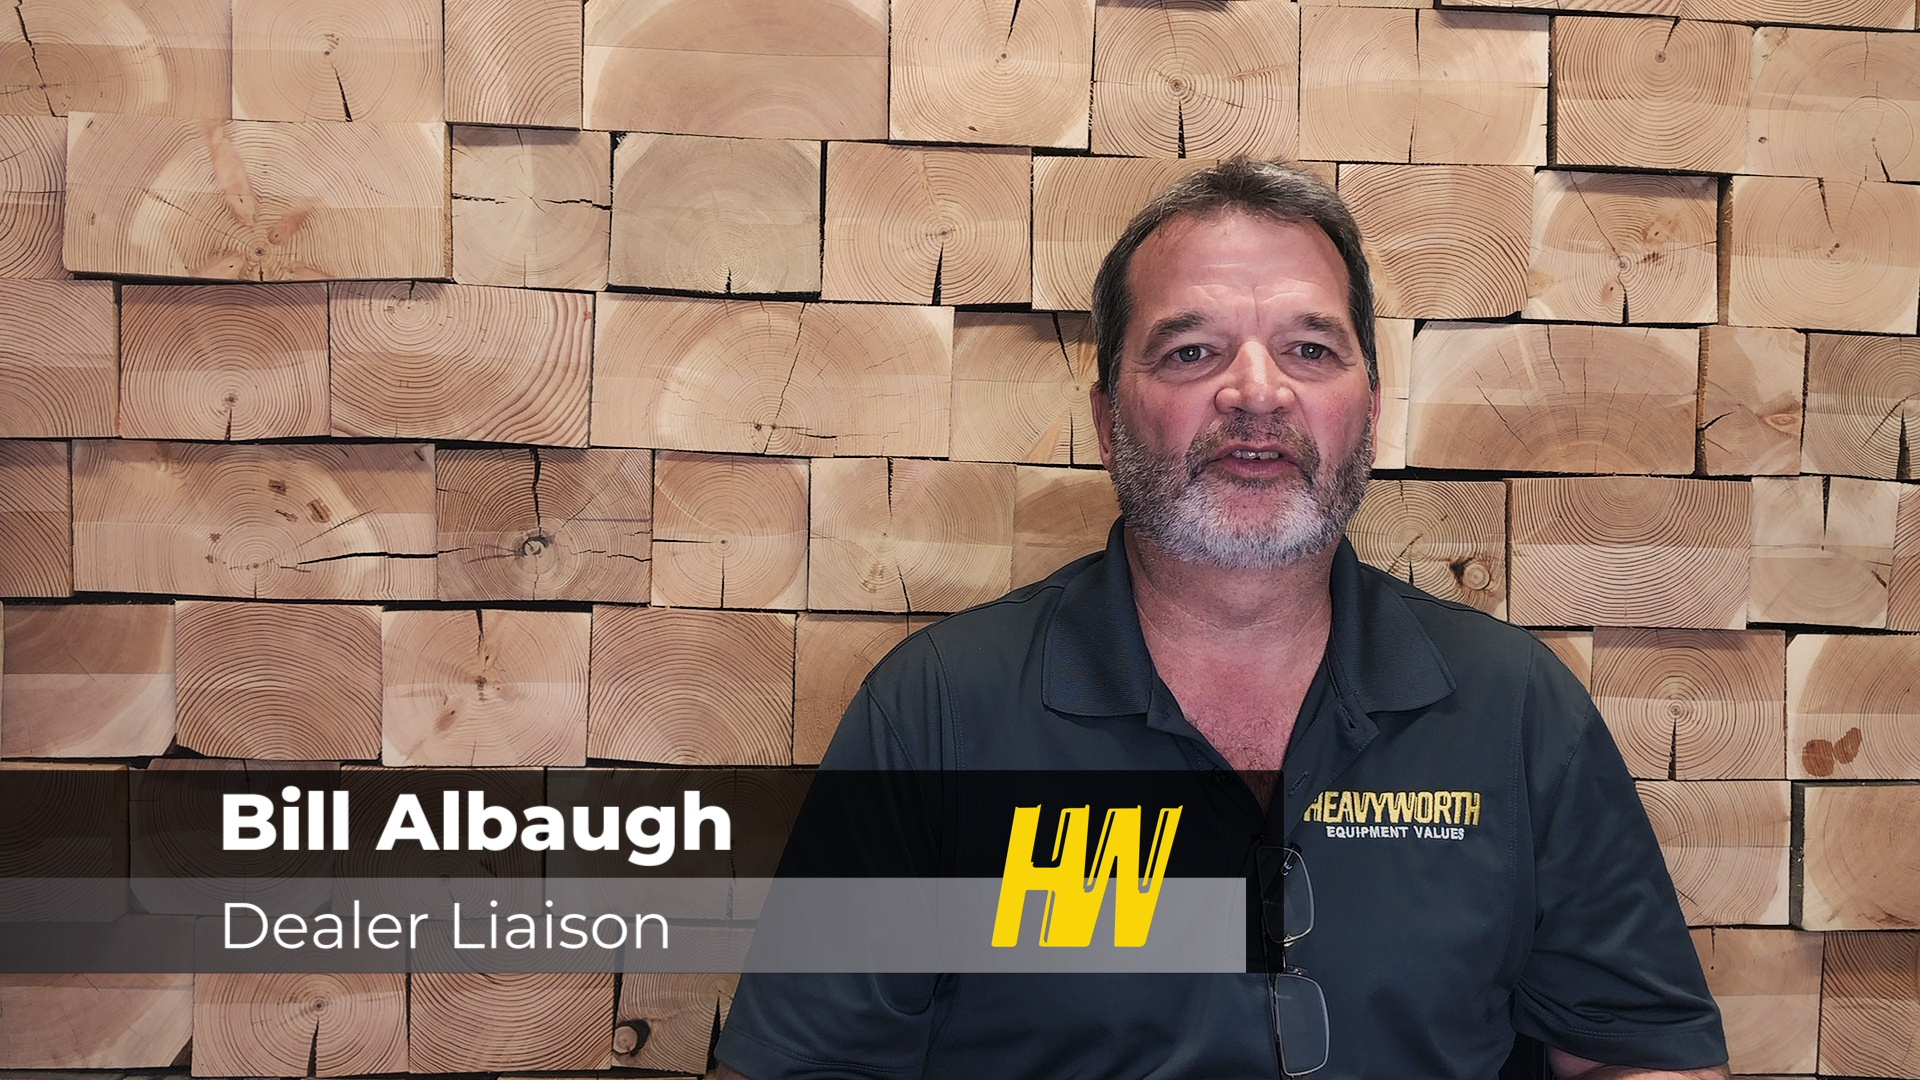 Bill Albaugh talks about getting top dollar for equipment trade-ins